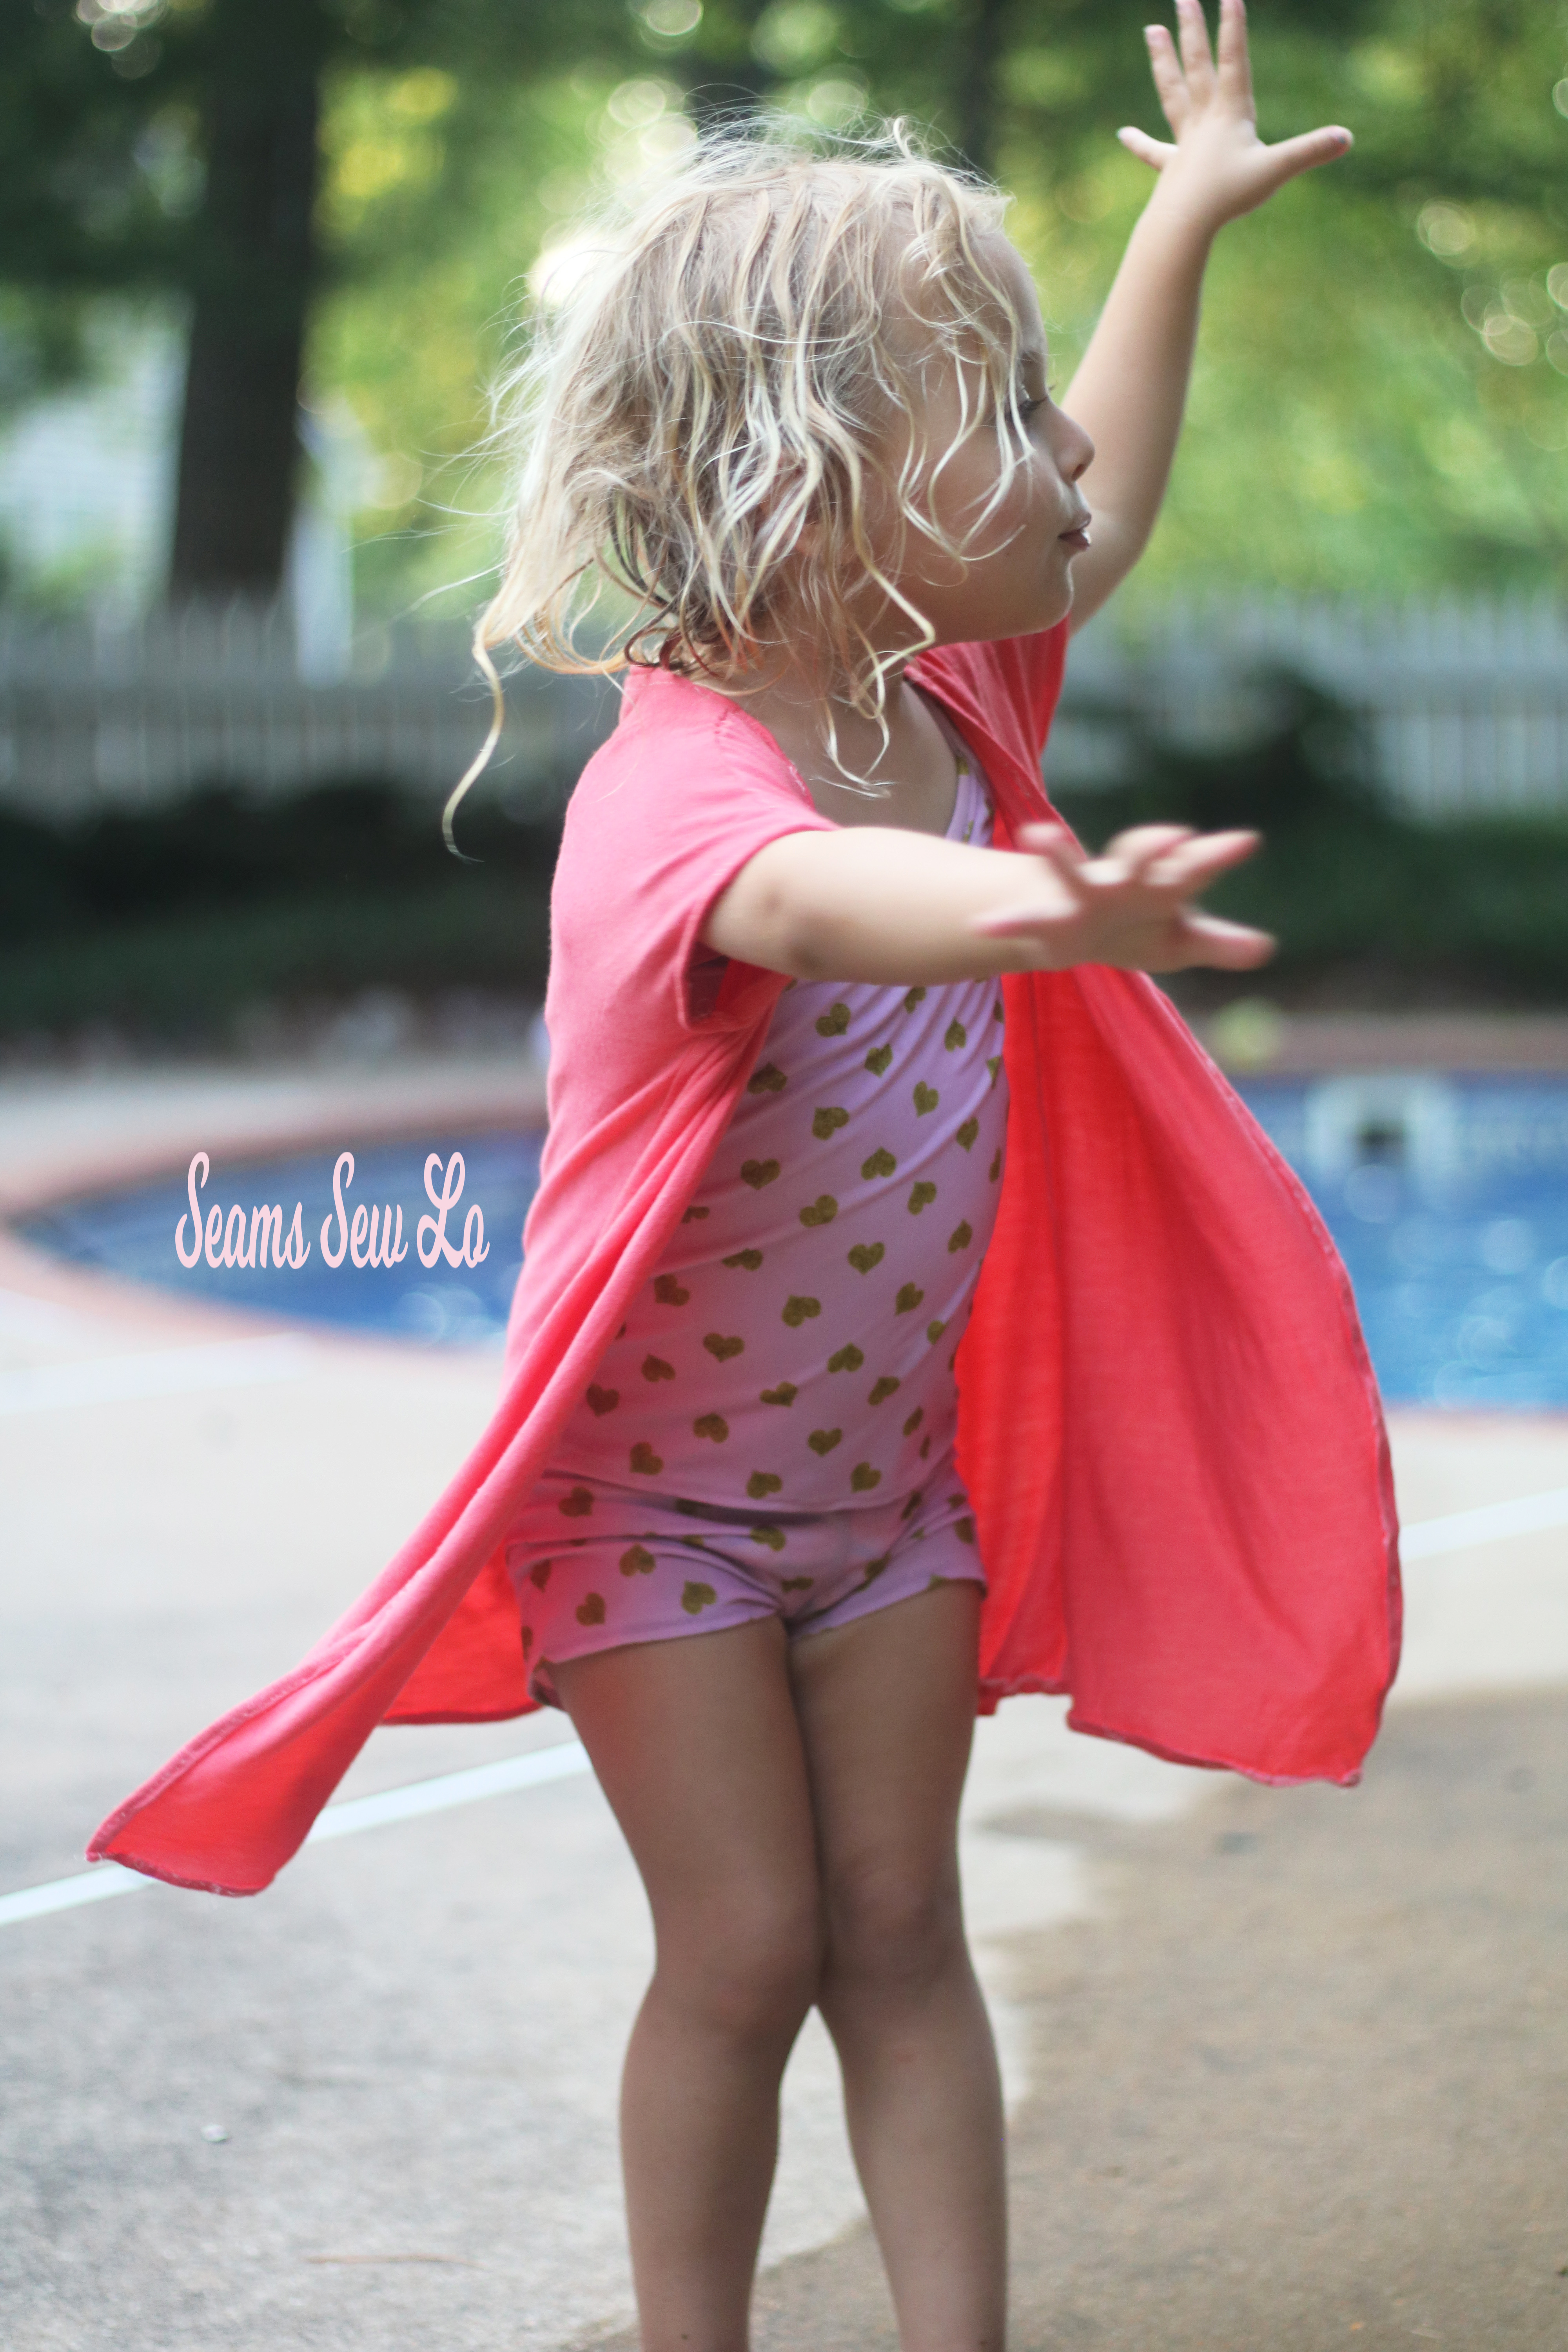 499c18d7fa Made for Mermaids Girls Lola Swimsuit Cover Up Sewing Pattern ...